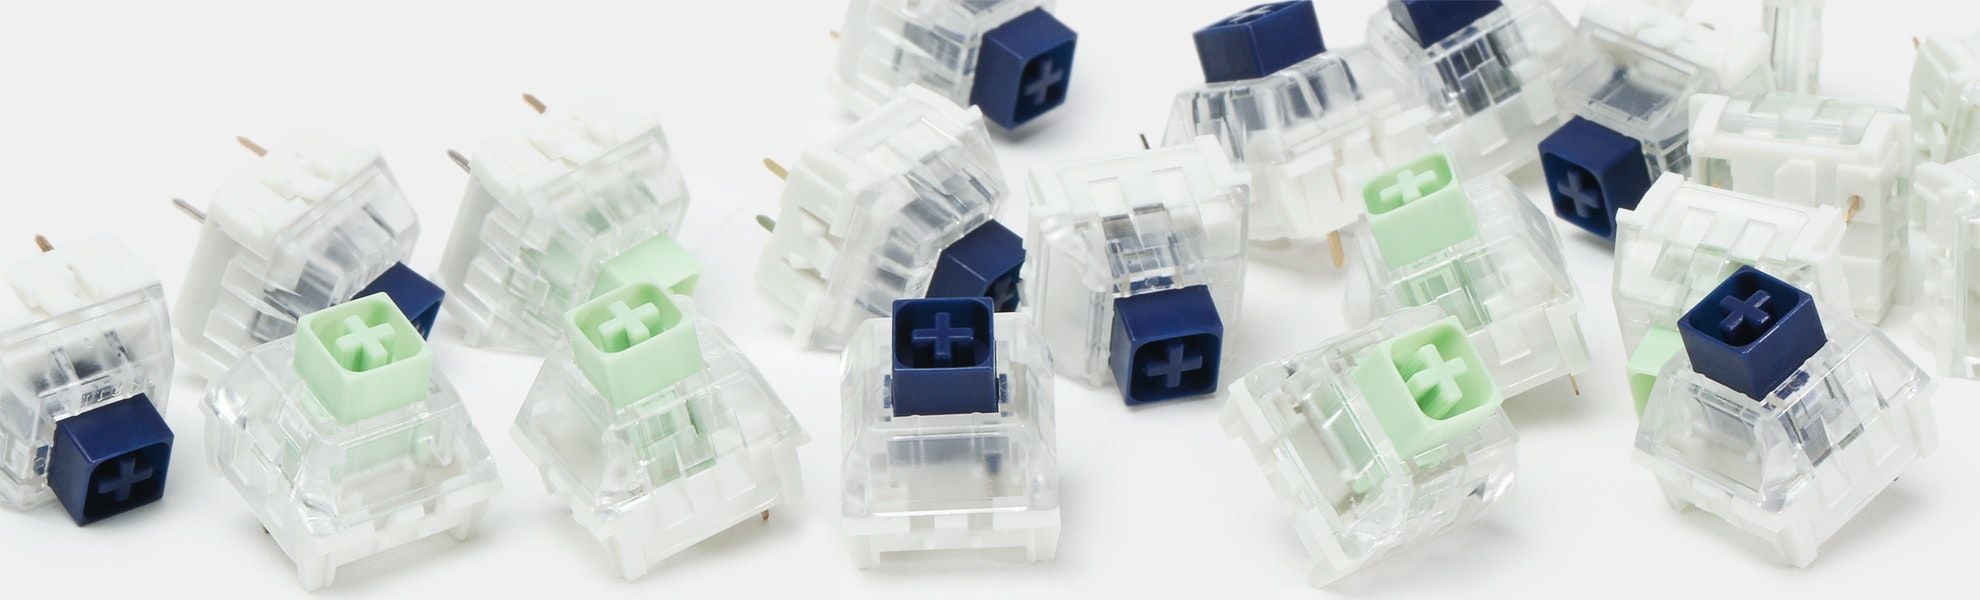 NovelKeys x Kailh BOX Thick Clicks Switches